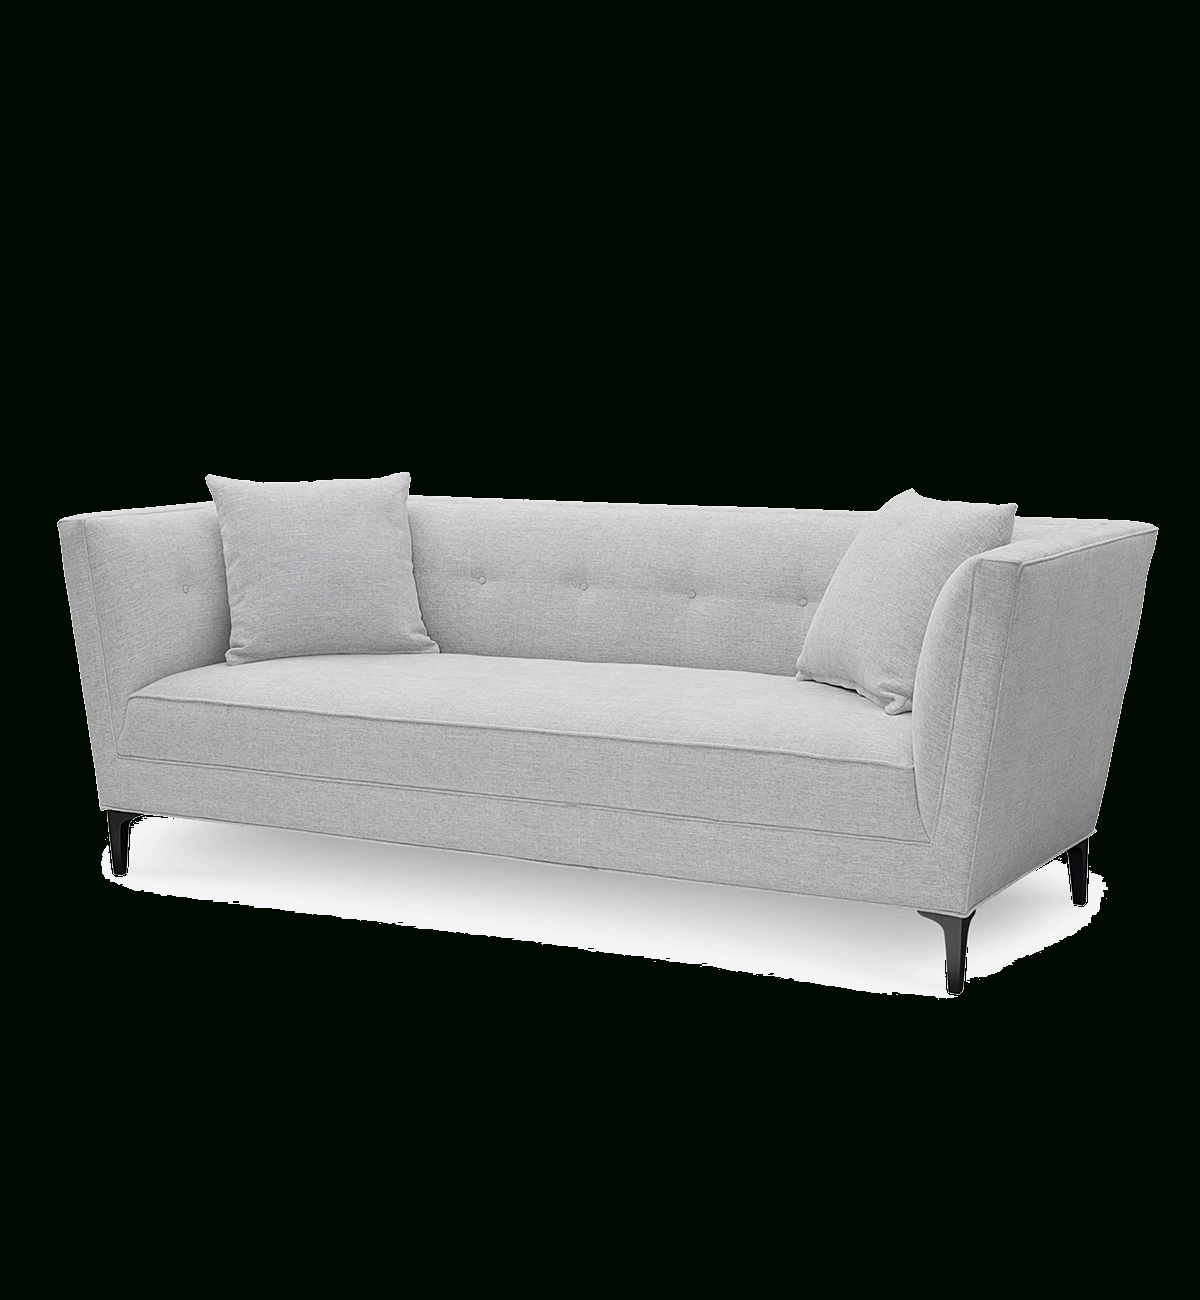 Macys Sofas Within 2018 Couches And Sofas – Macy's (View 2 of 15)